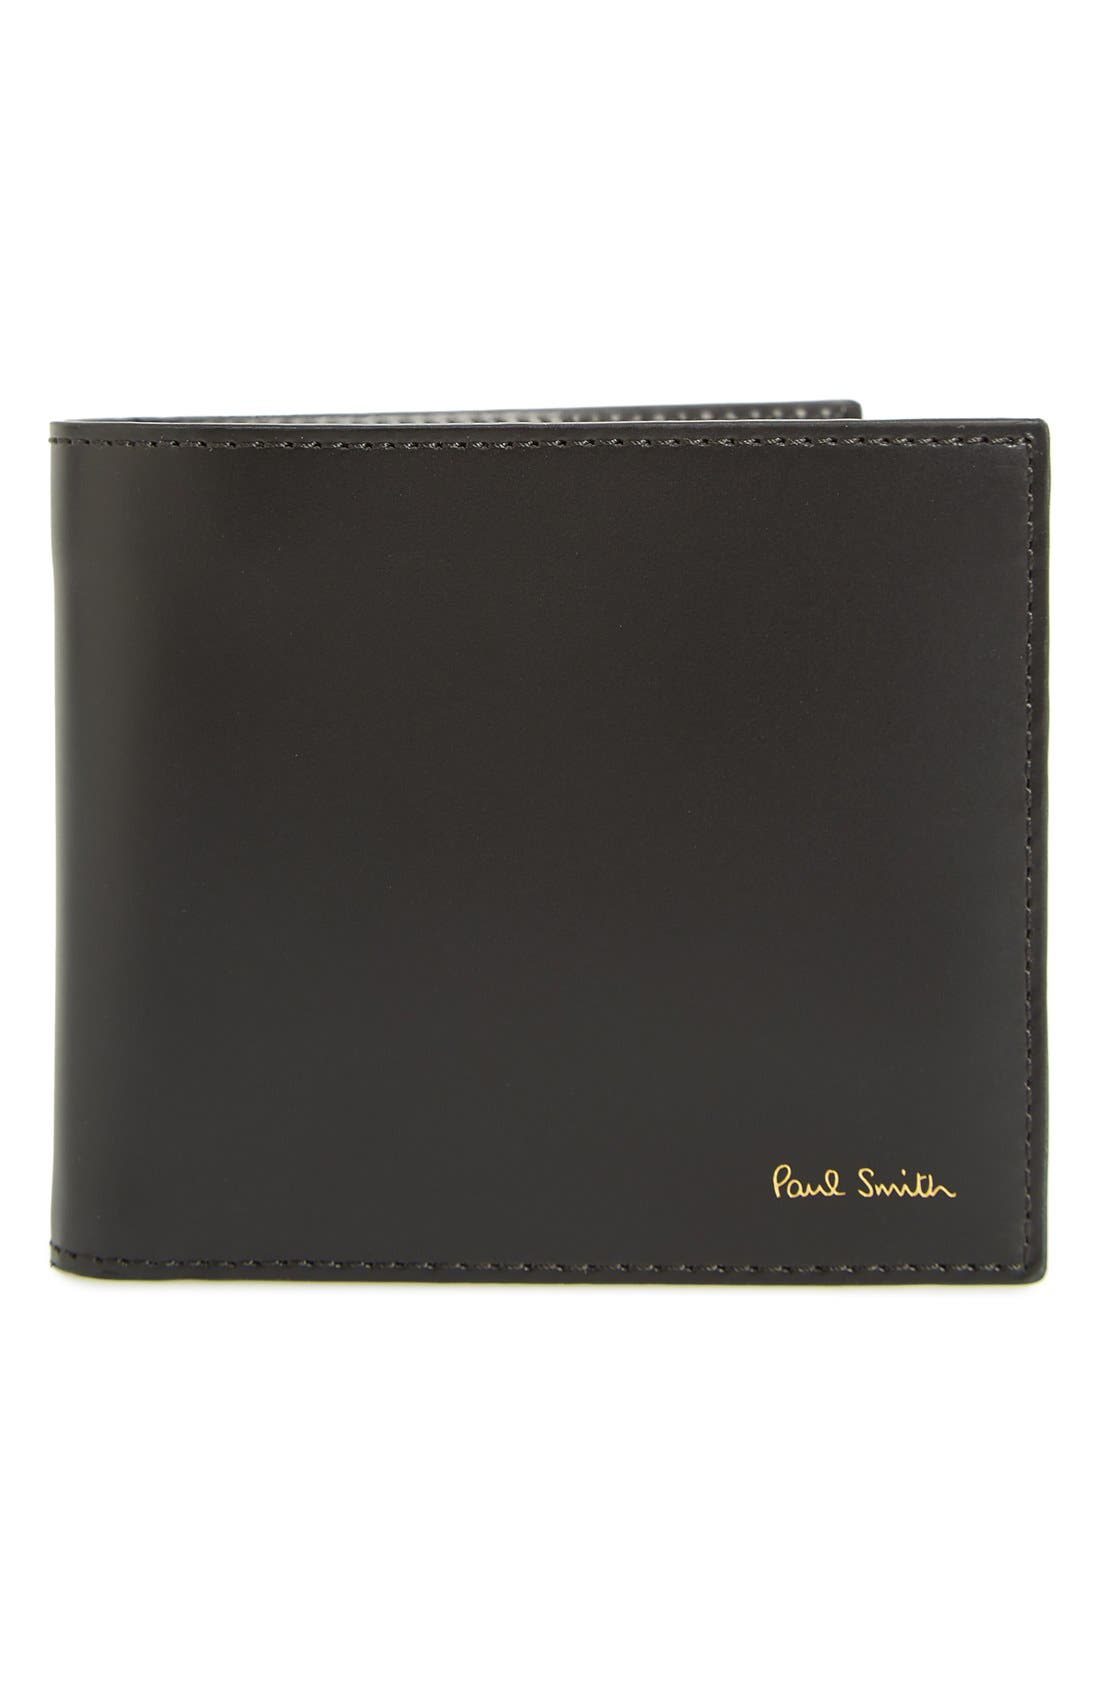 Main Image - Paul Smith Leather Wallet